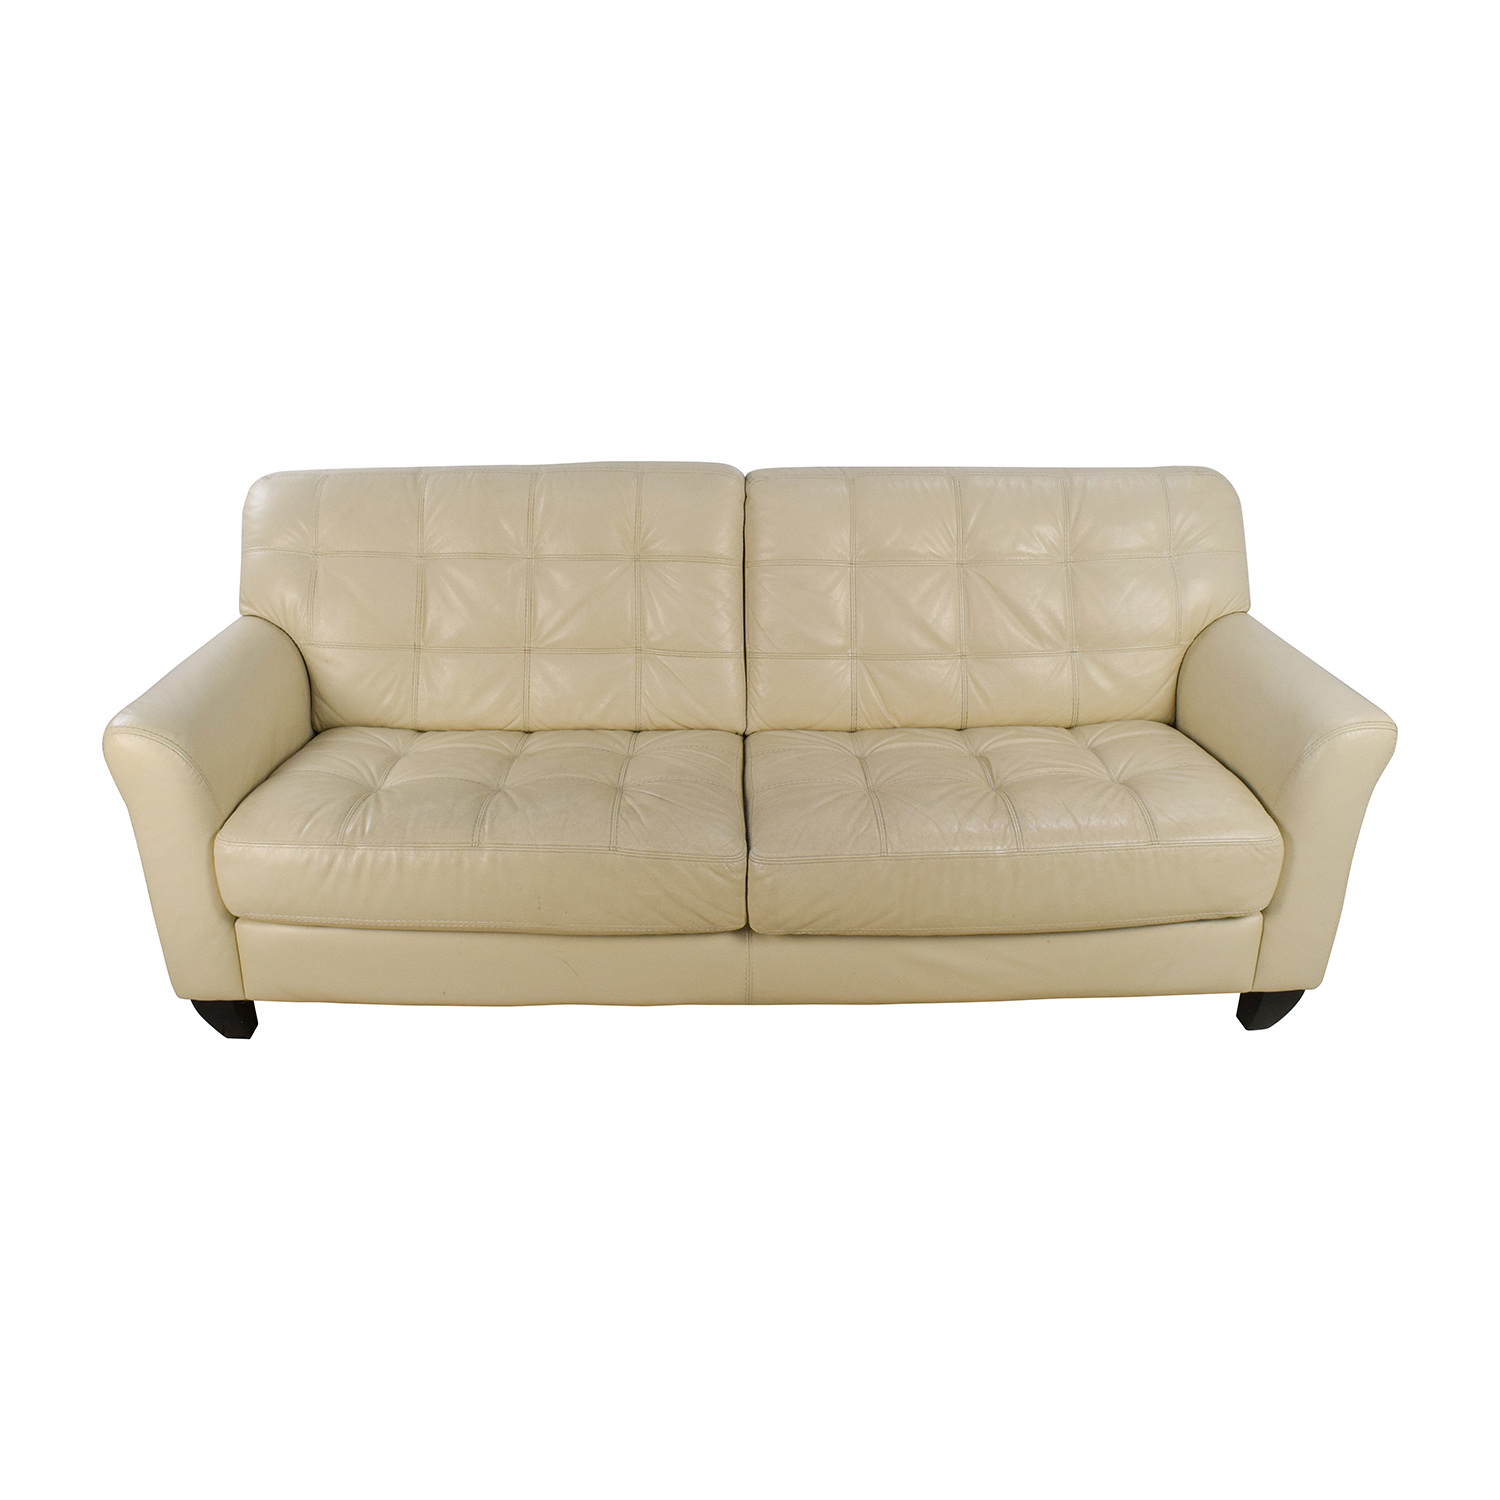 68 Off Macy 39 S Macy 39 S Milan White Leather Couch Sofas